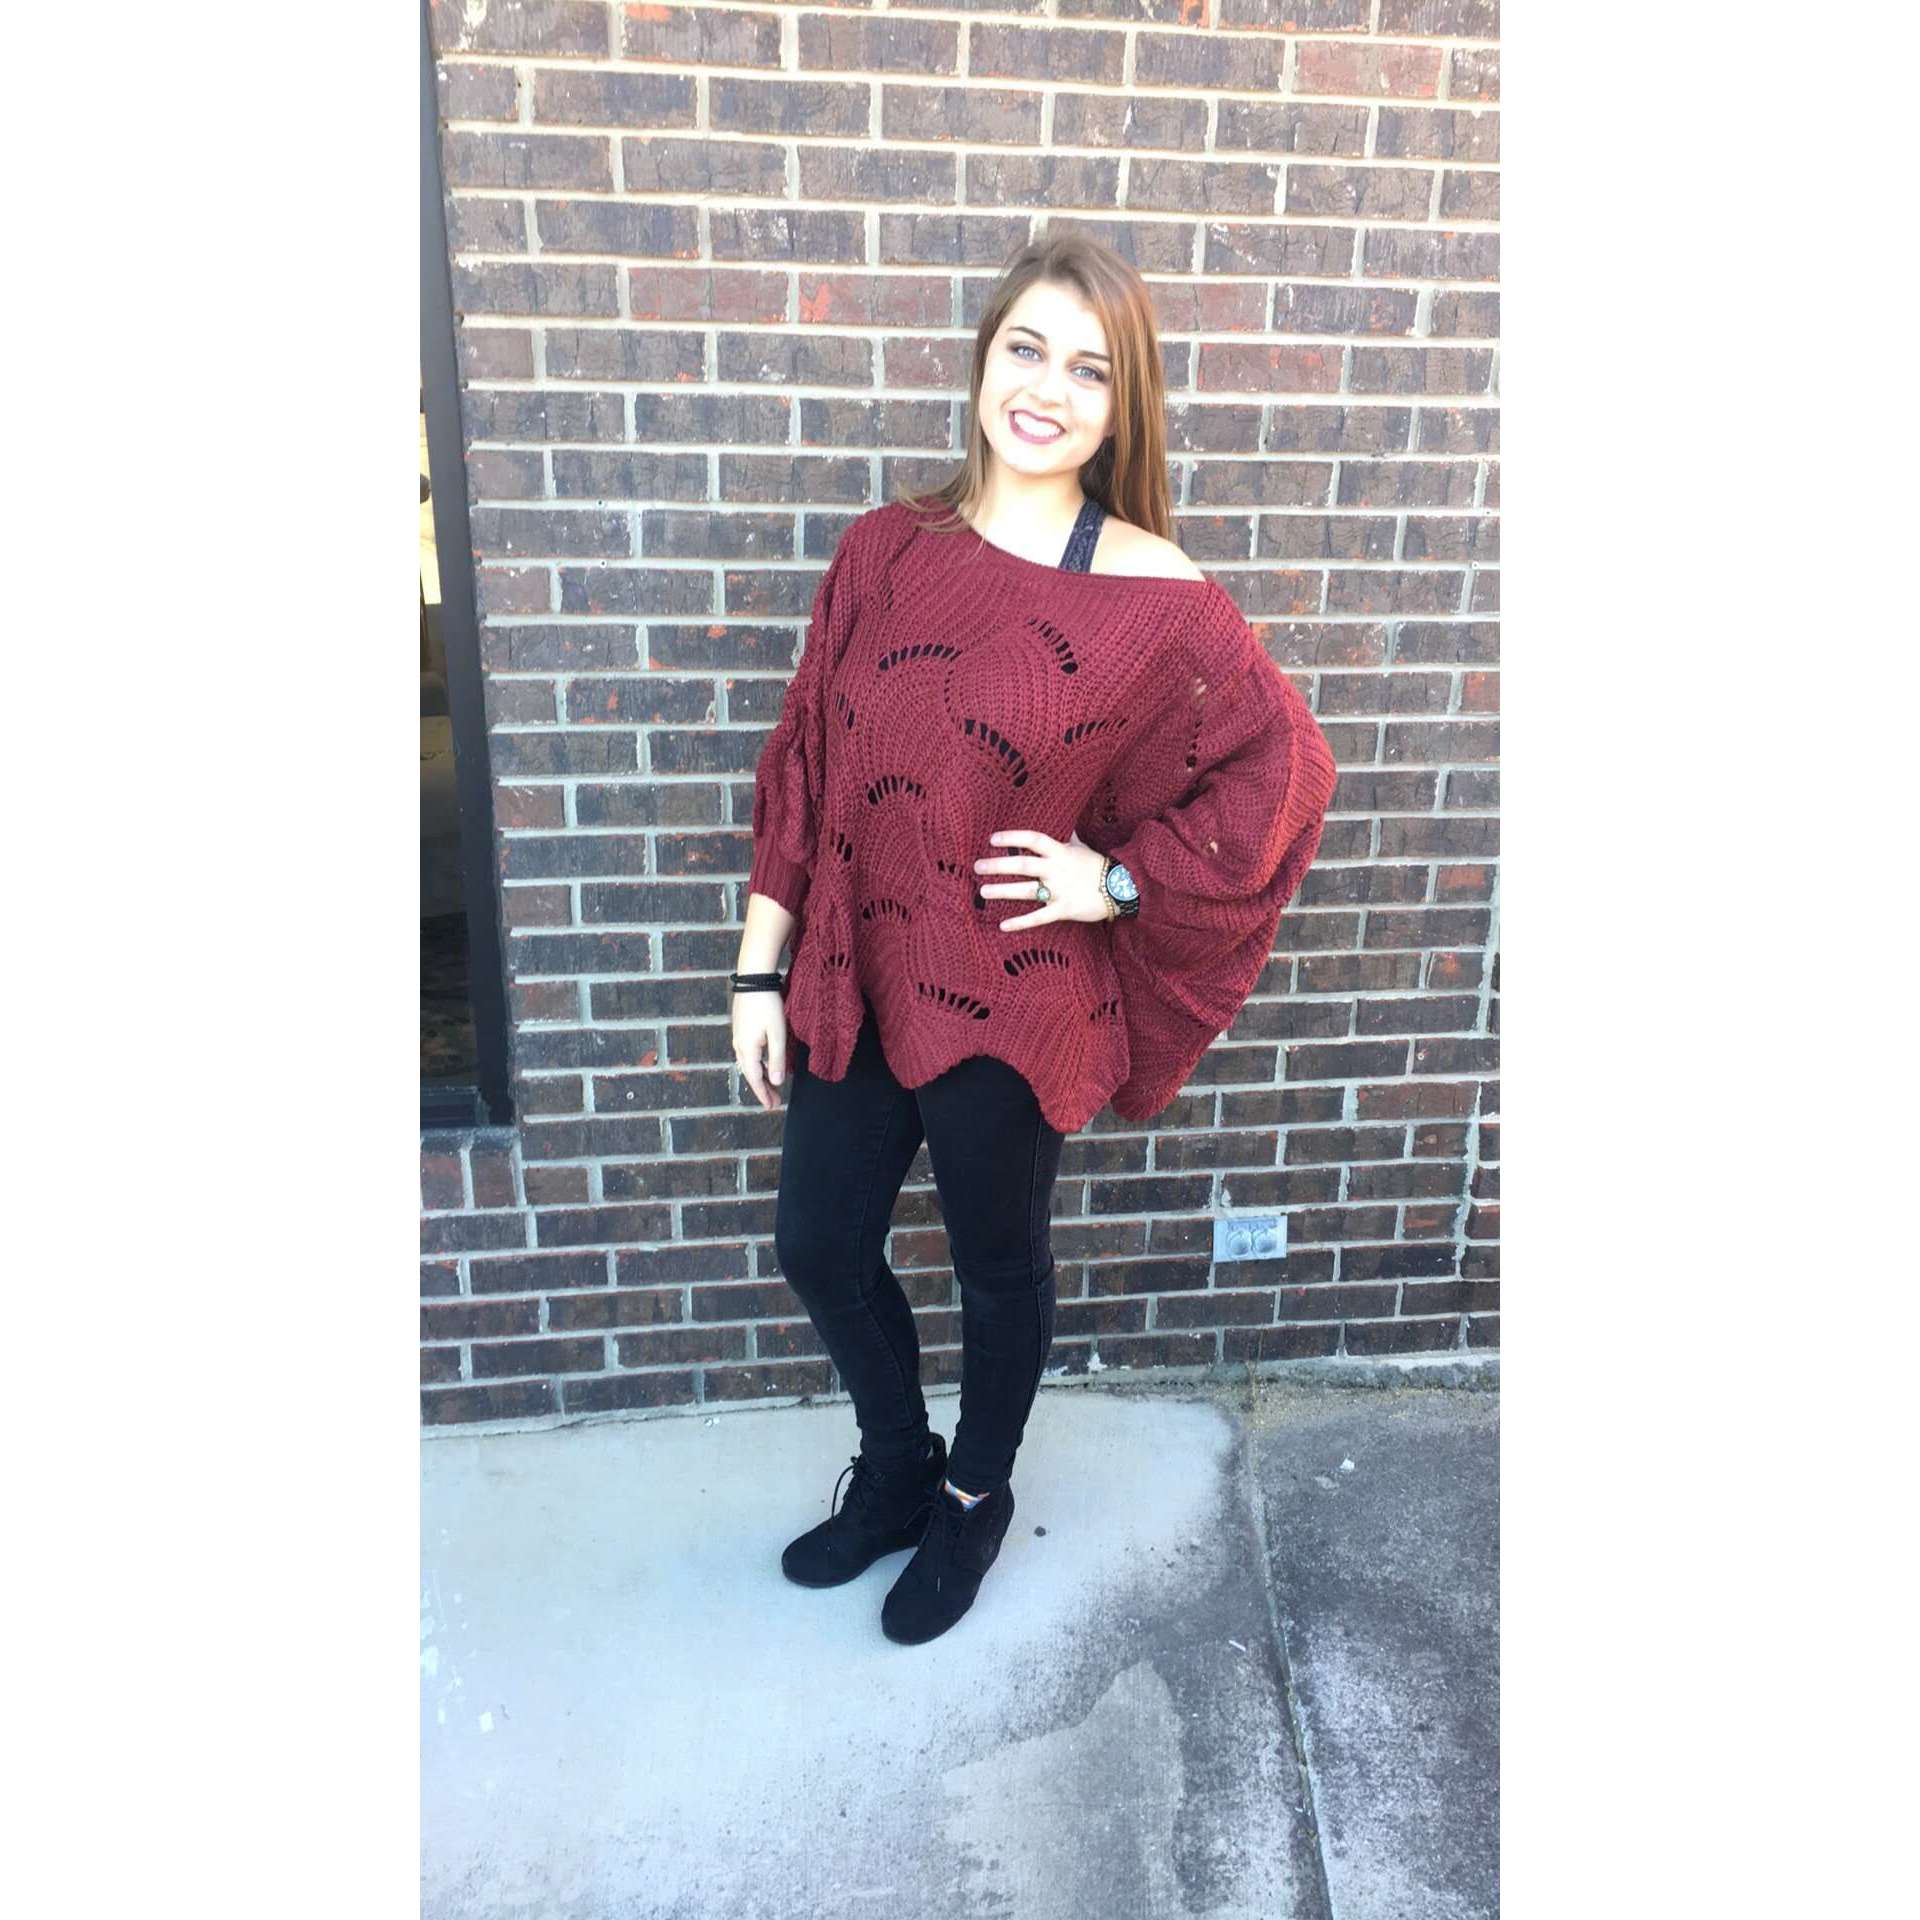 ST. Haven Marsala Knit Scalloped Dolman Sleeve Sweater